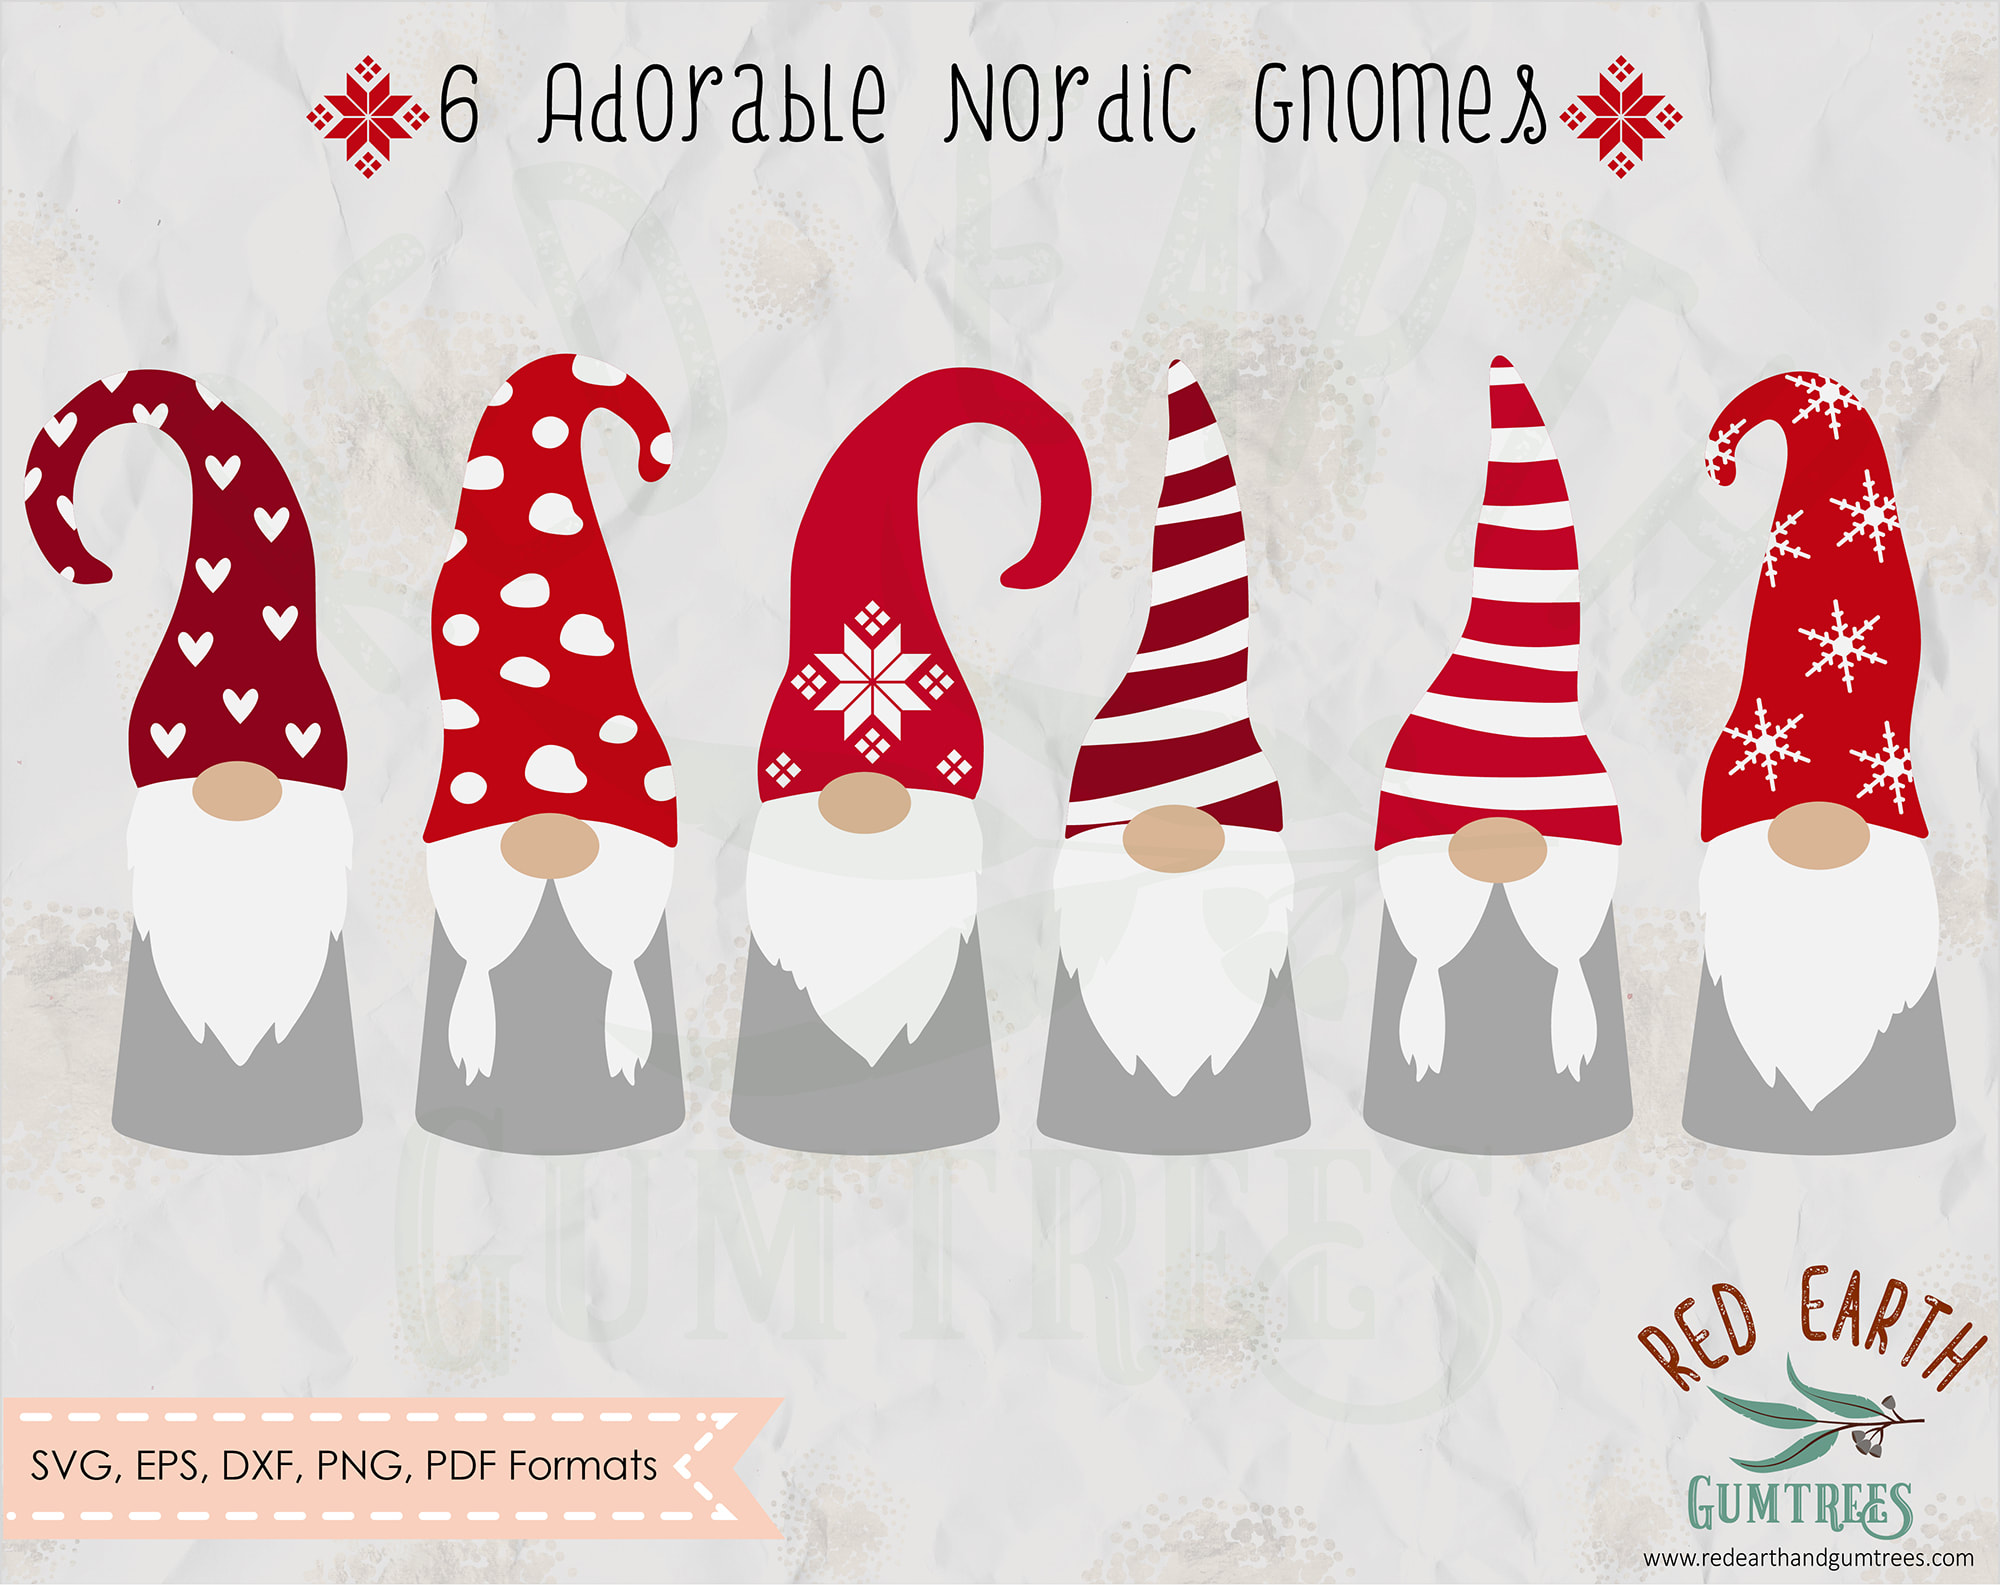 Nordic gnome bundle, Nordic Christmas gnome in SVG, EPS, PDF, DXF, PNG  formats.